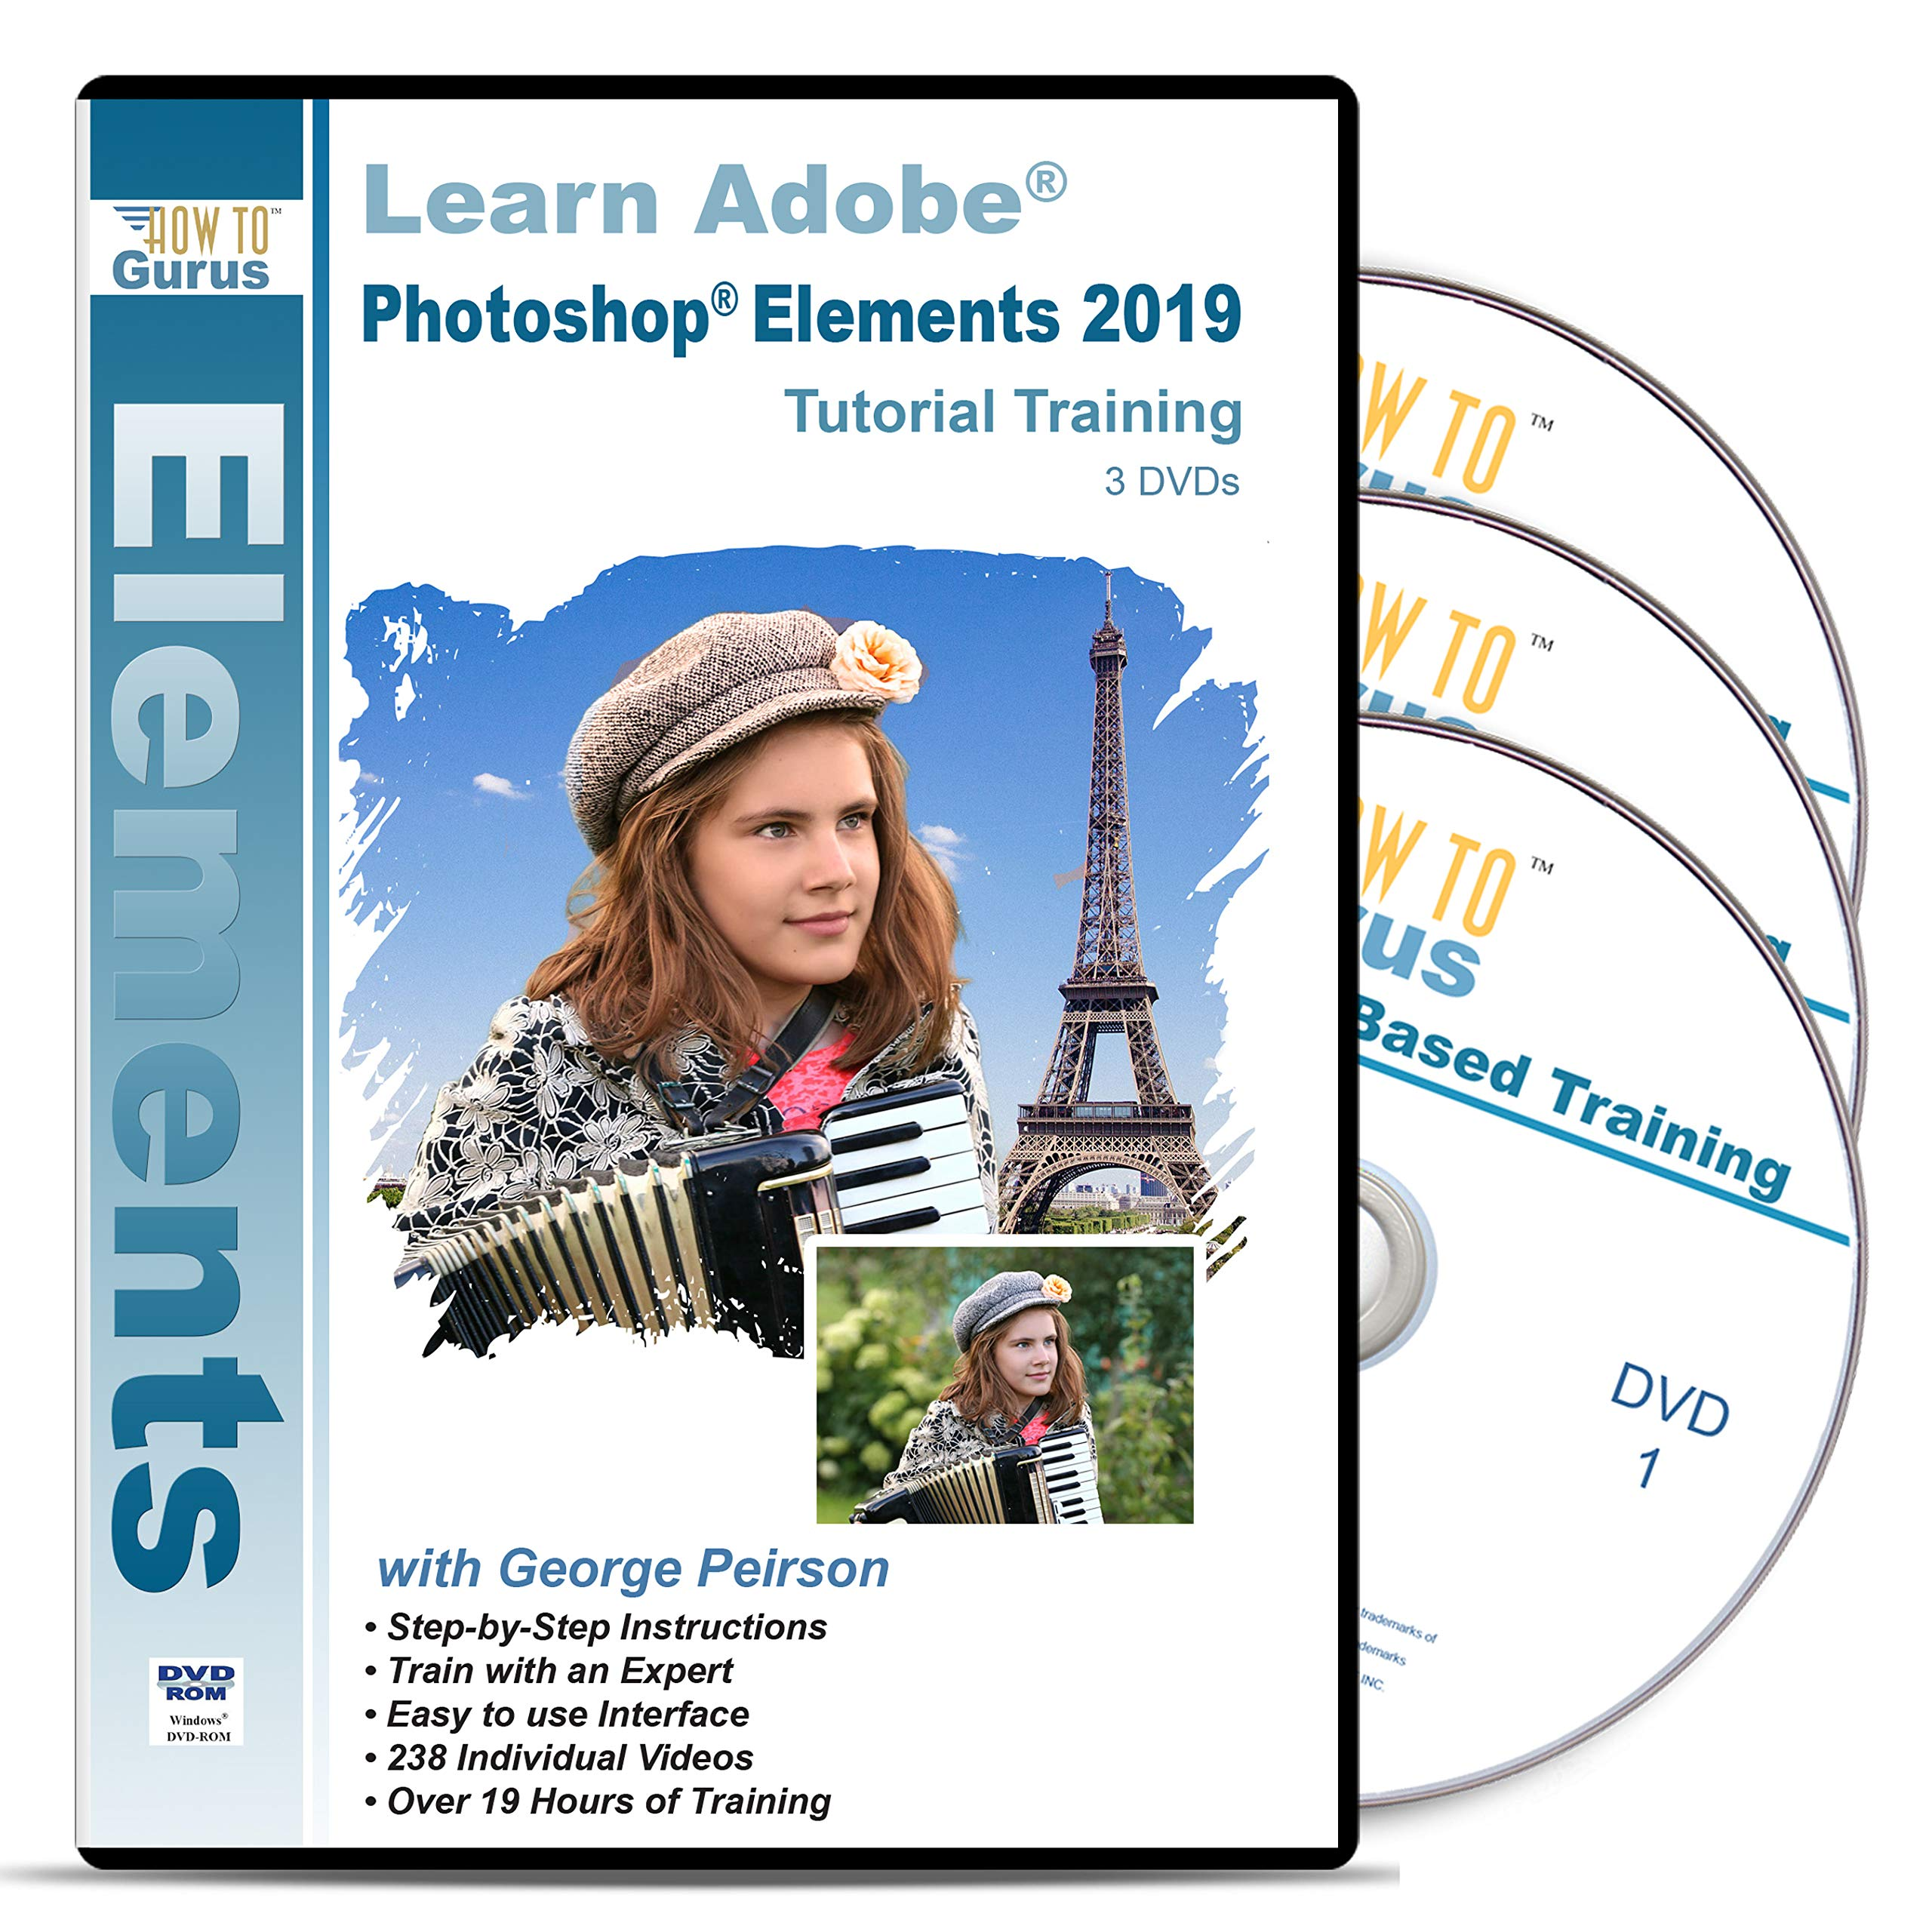 Adobe Photoshop Elements 2019 Training 3 DVDs Over 19 Hours in 238 Tutorials Includes Easy to Follow Lessons Tips Tricks by How To Gurus (Image #1)